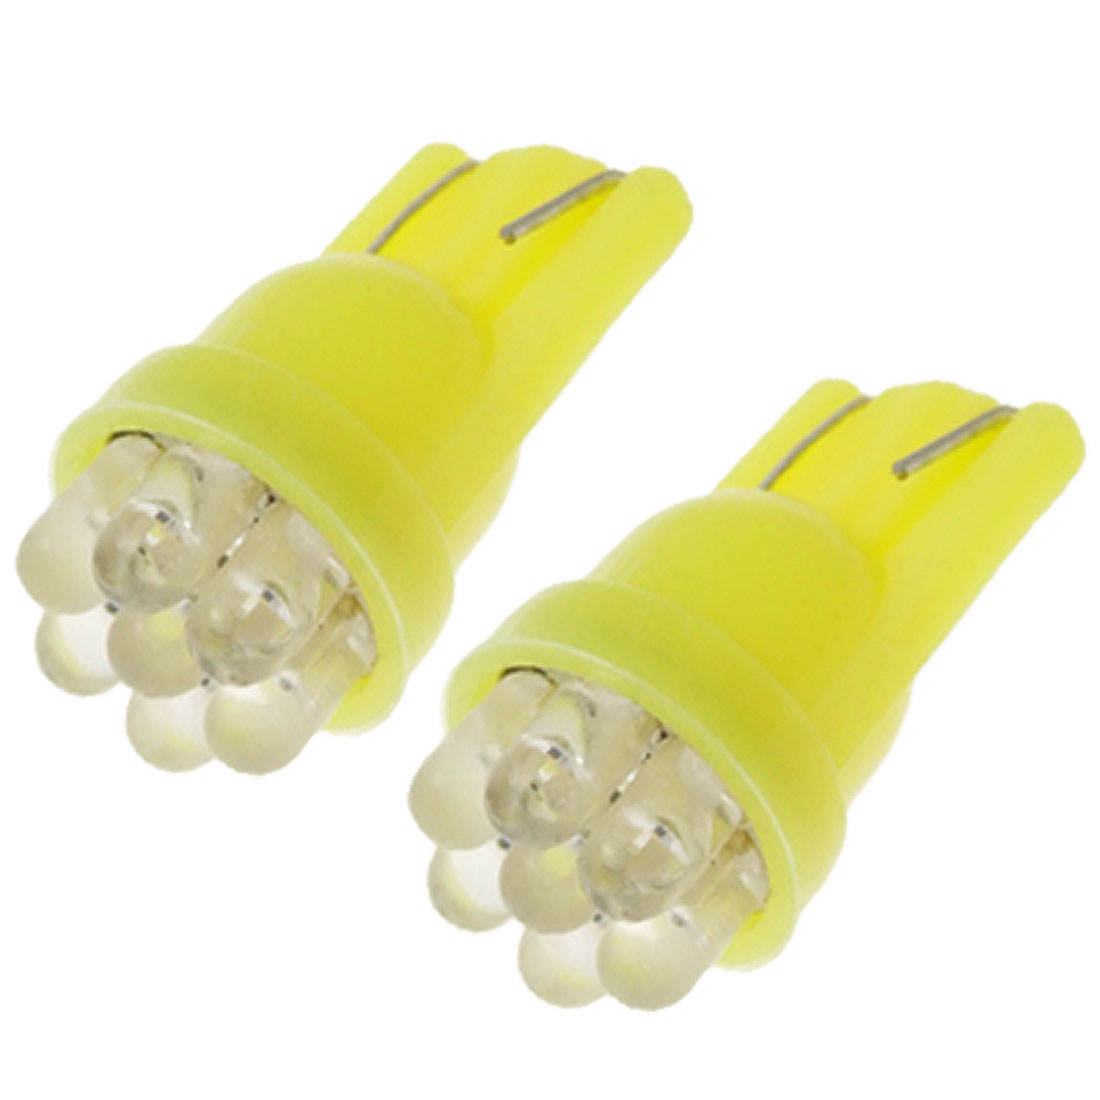 Mini T10 7 LED Yellow Light 12V Car Auto Lamp Bulb 2PCS